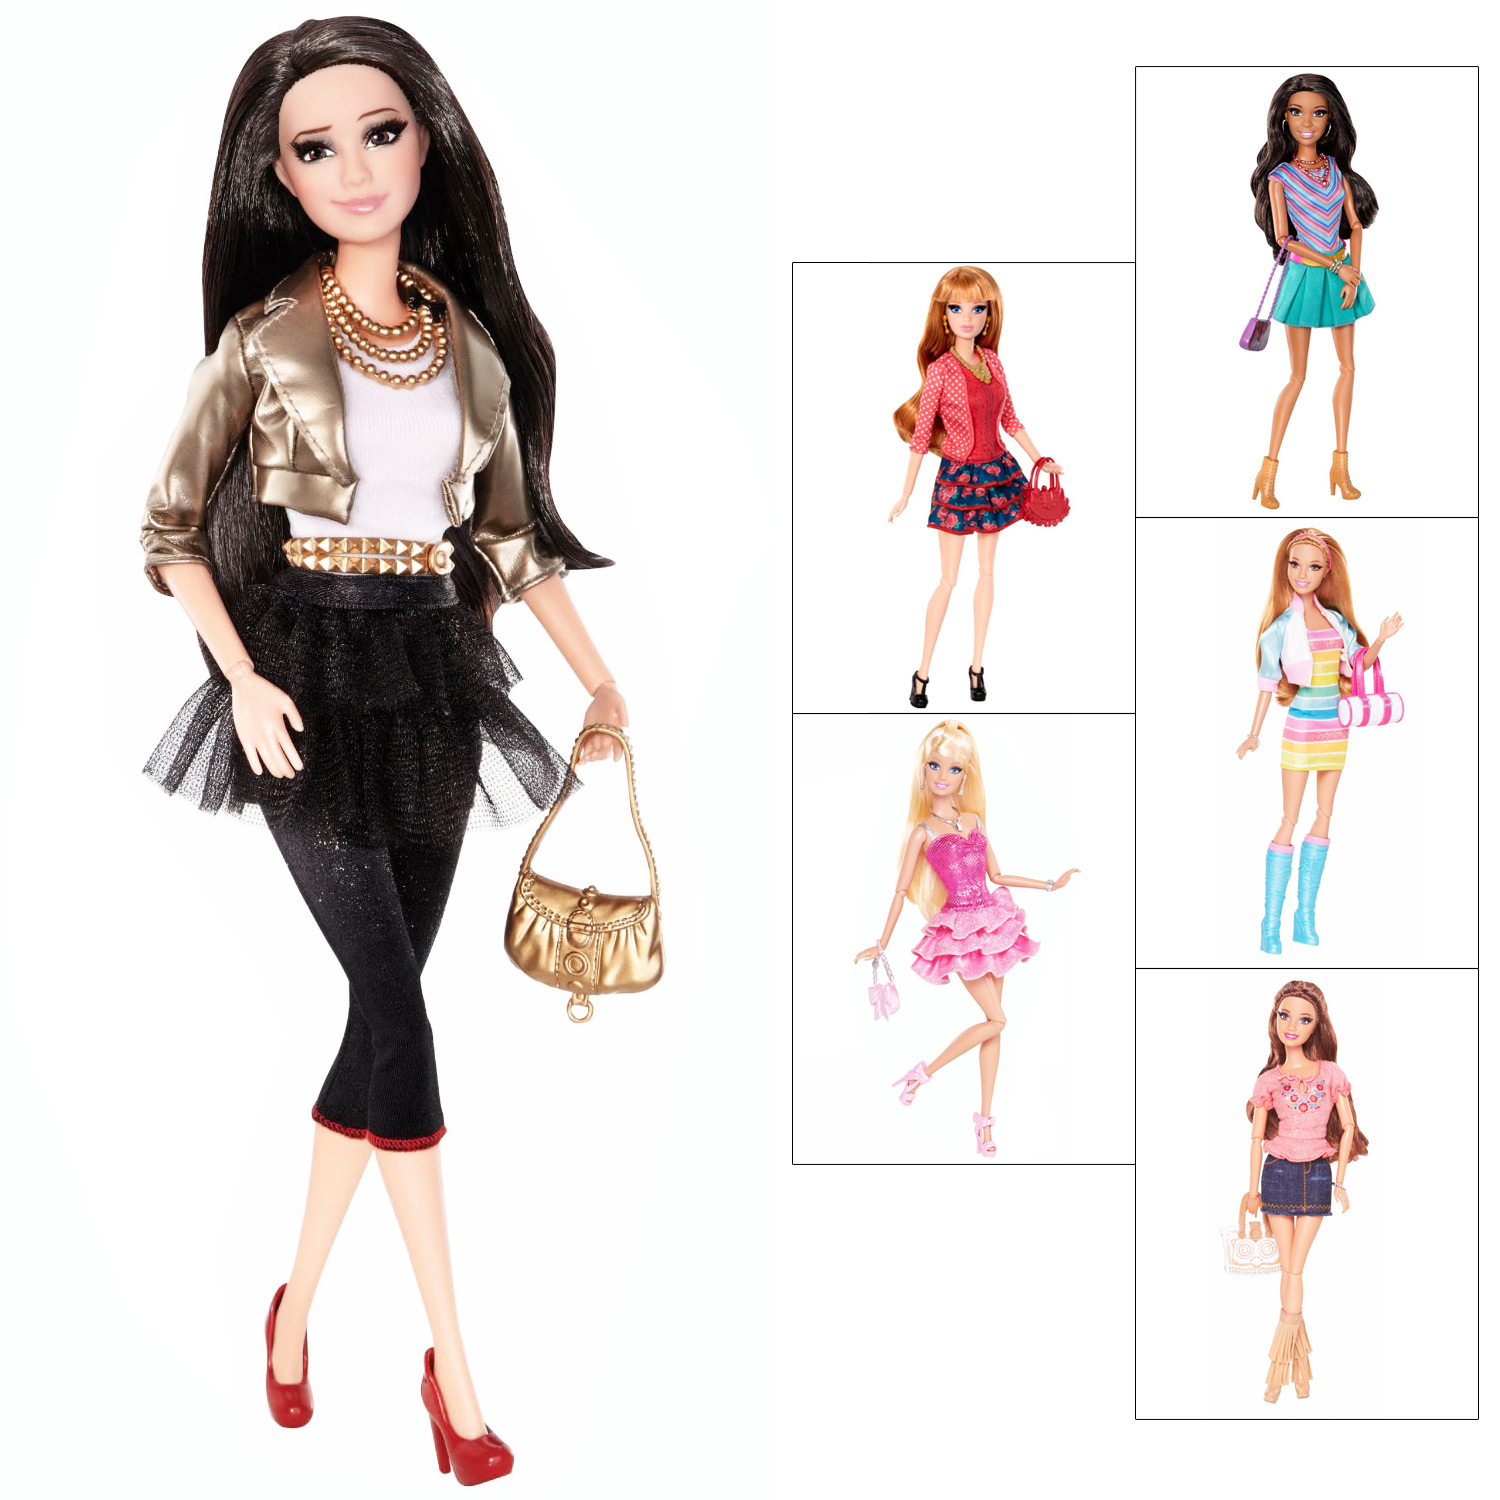 Uncategorized Barbie Raquelle barbie life in the dreamhouse doll 2 outfits teresa nikki summer midge raquelle